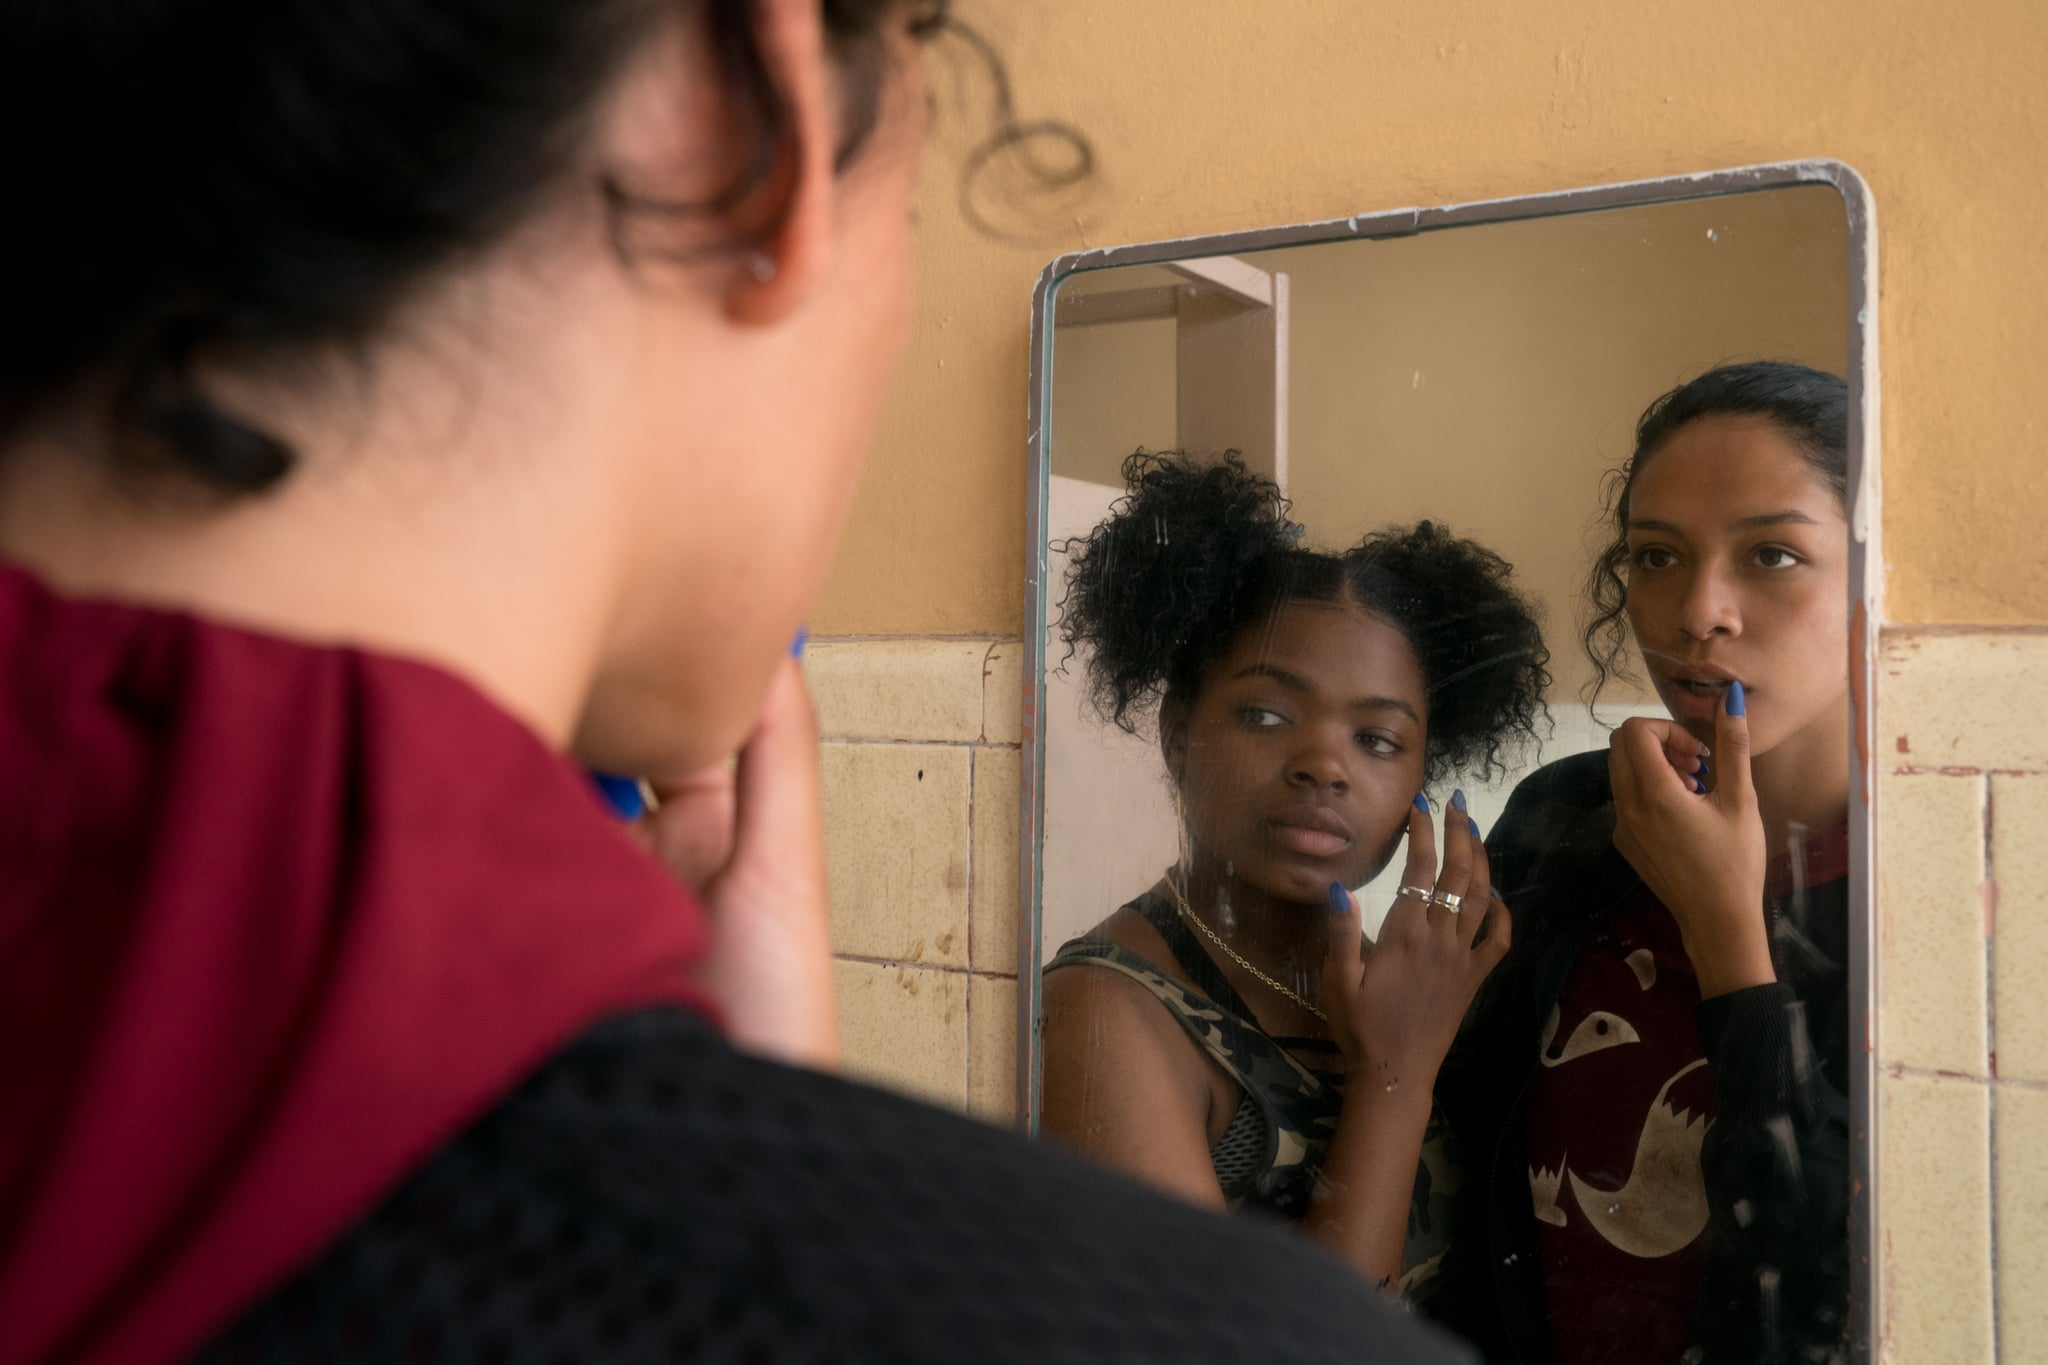 Sasha and Yvonne looking at themselves in a mirror at school in Chambers